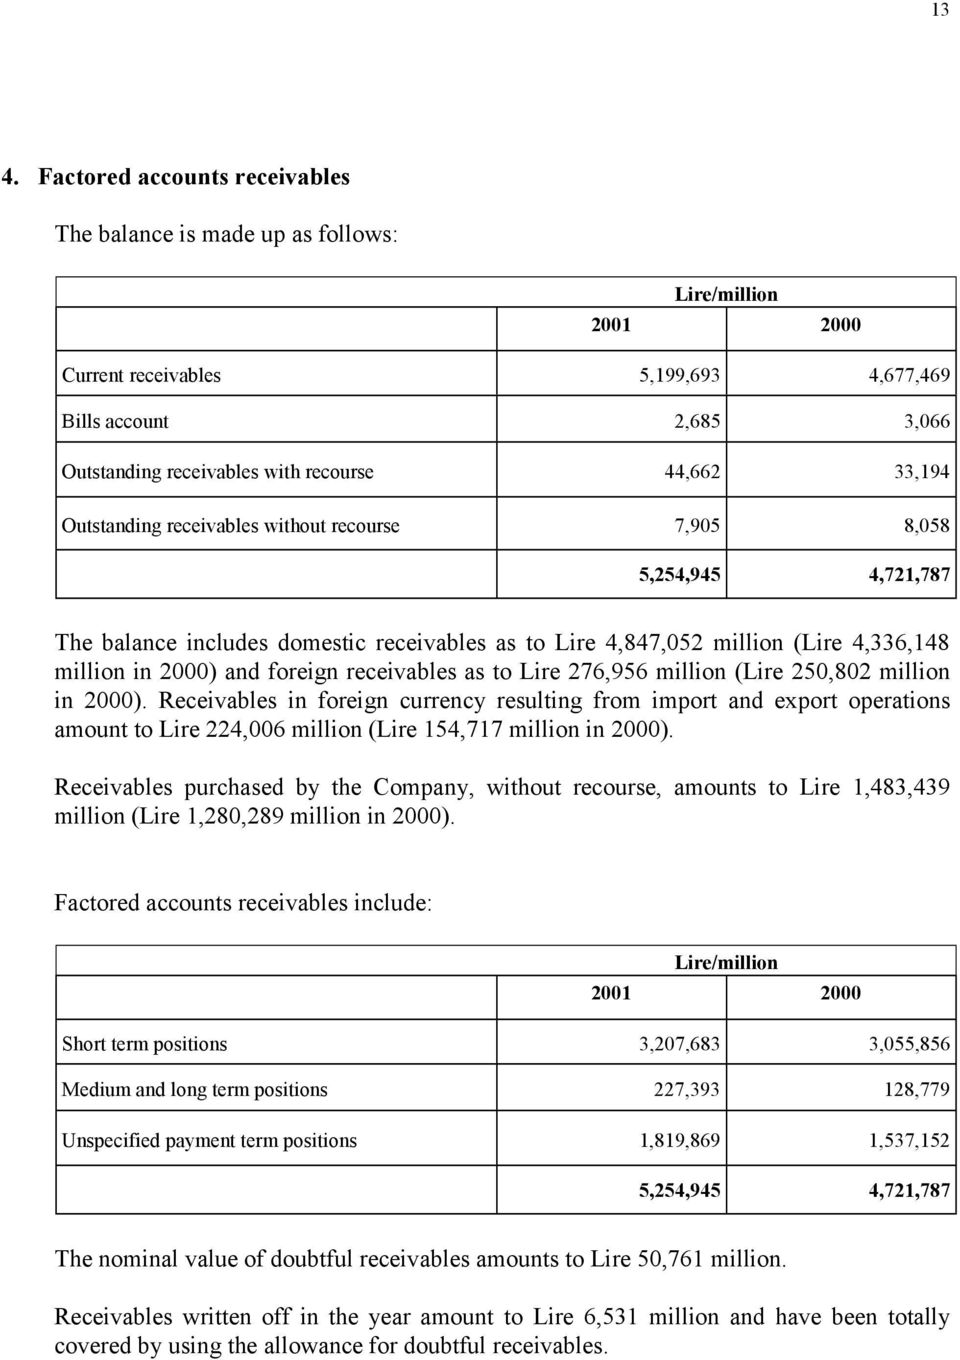 foreign receivables as to Lire 276,956 million (Lire 250,802 million in 2000).